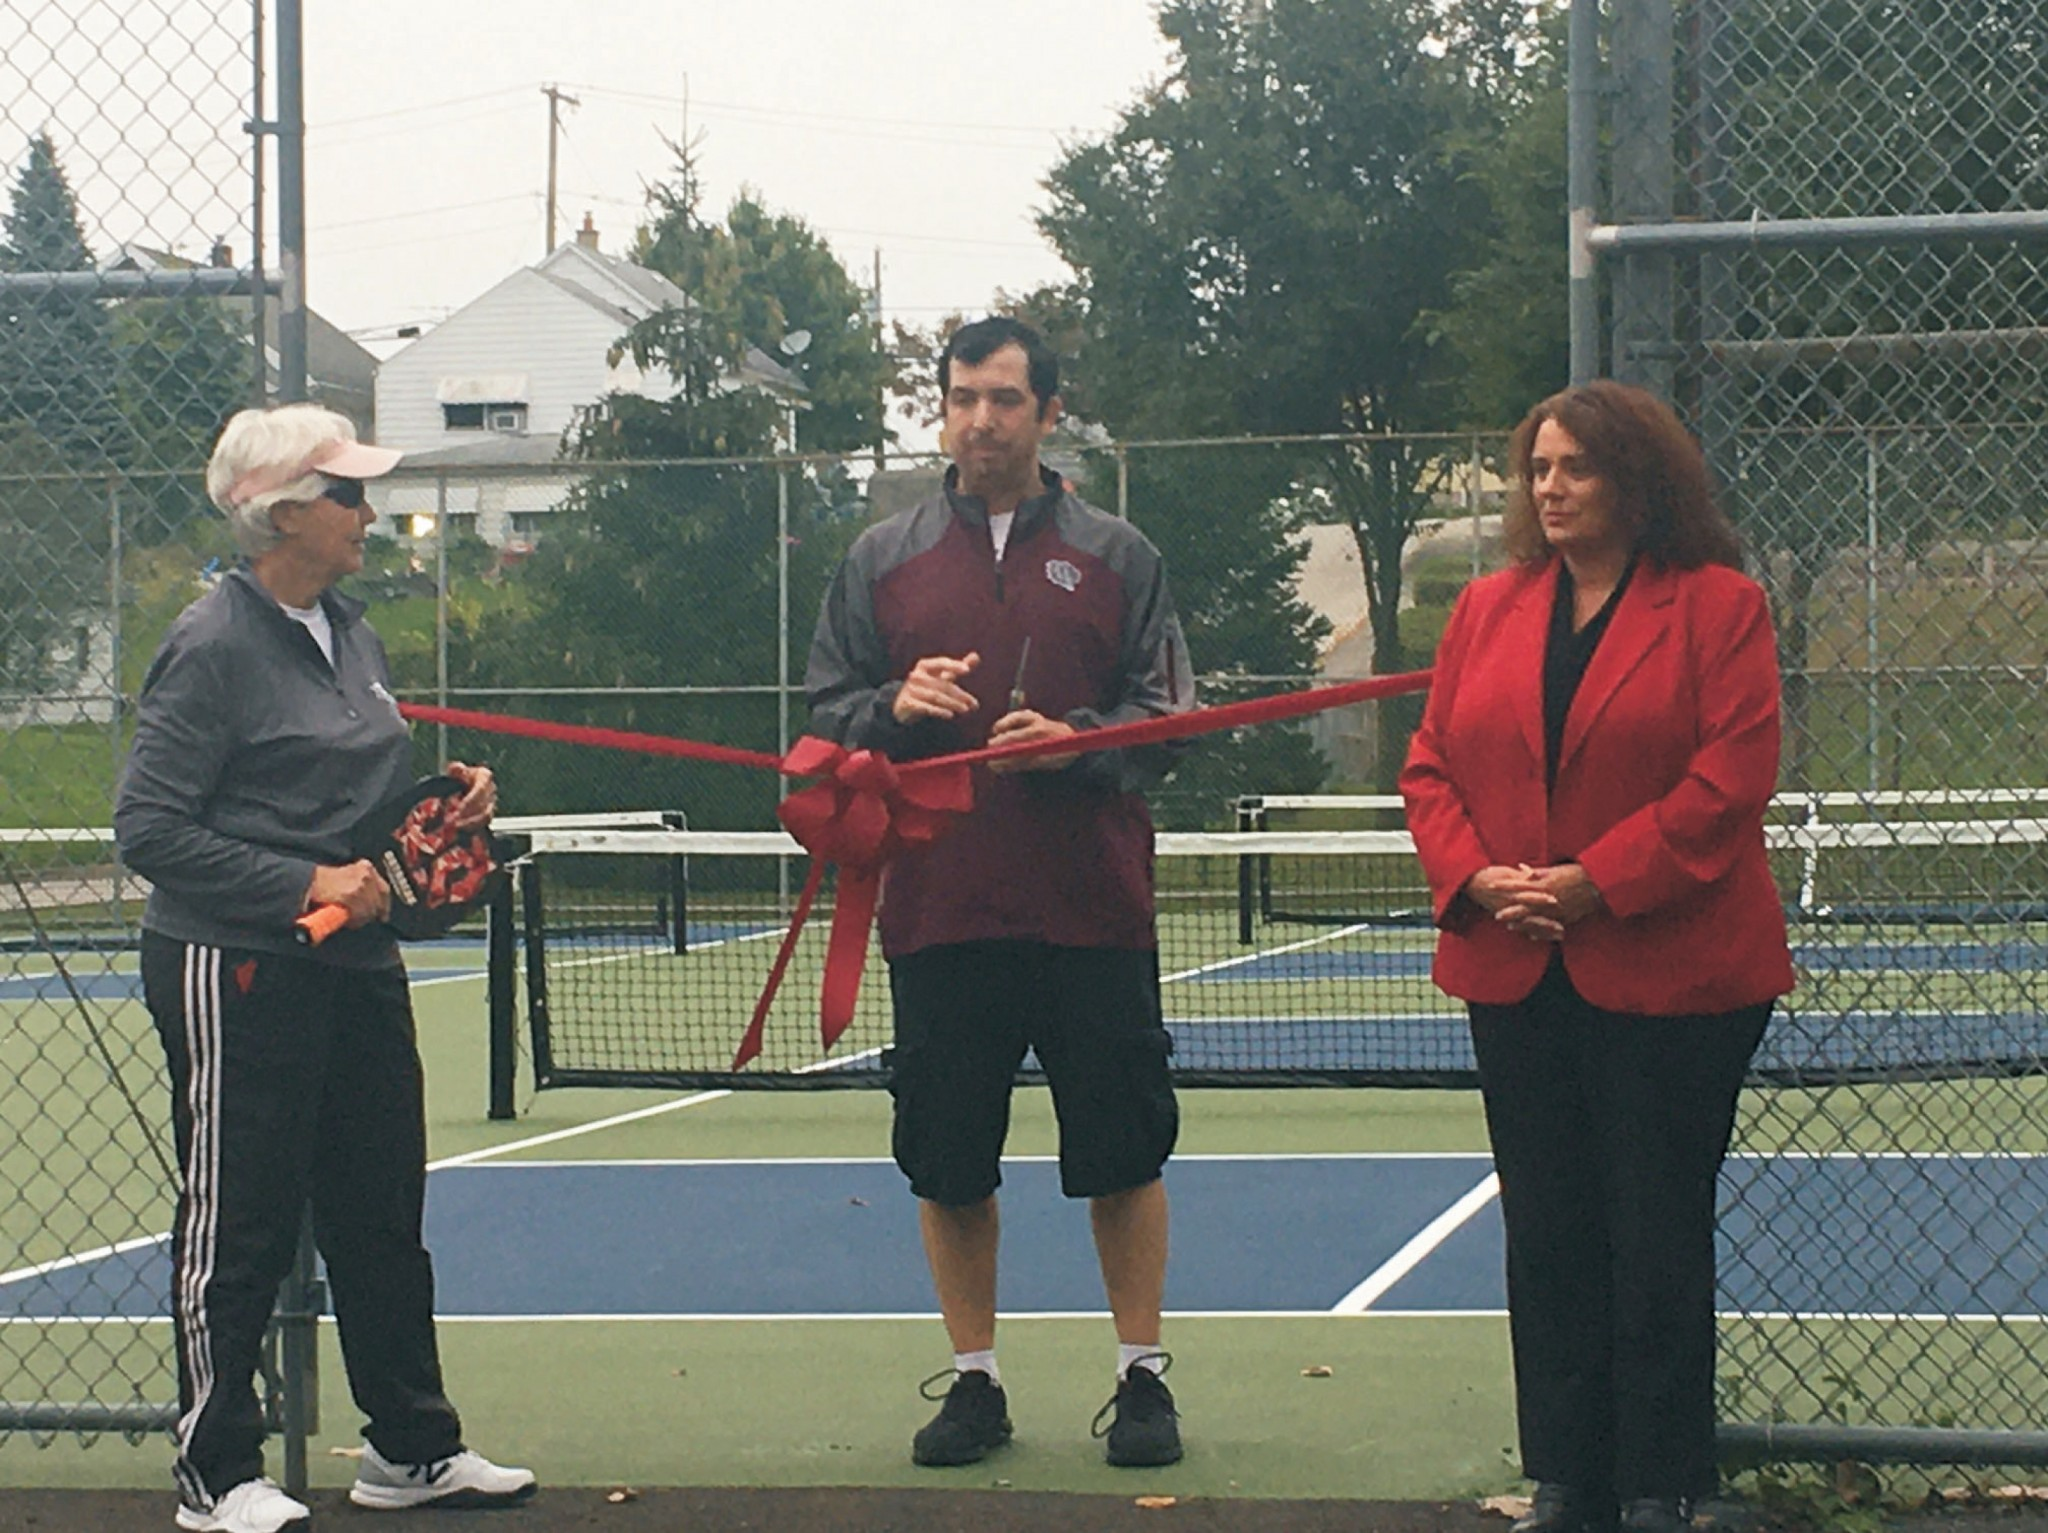 Connie Mierzejewski, fouding member of the Toledo Pickleball Club, Rossford Recreation Director Toby Ledesma and Rossford City Administrator Allyson Murray.